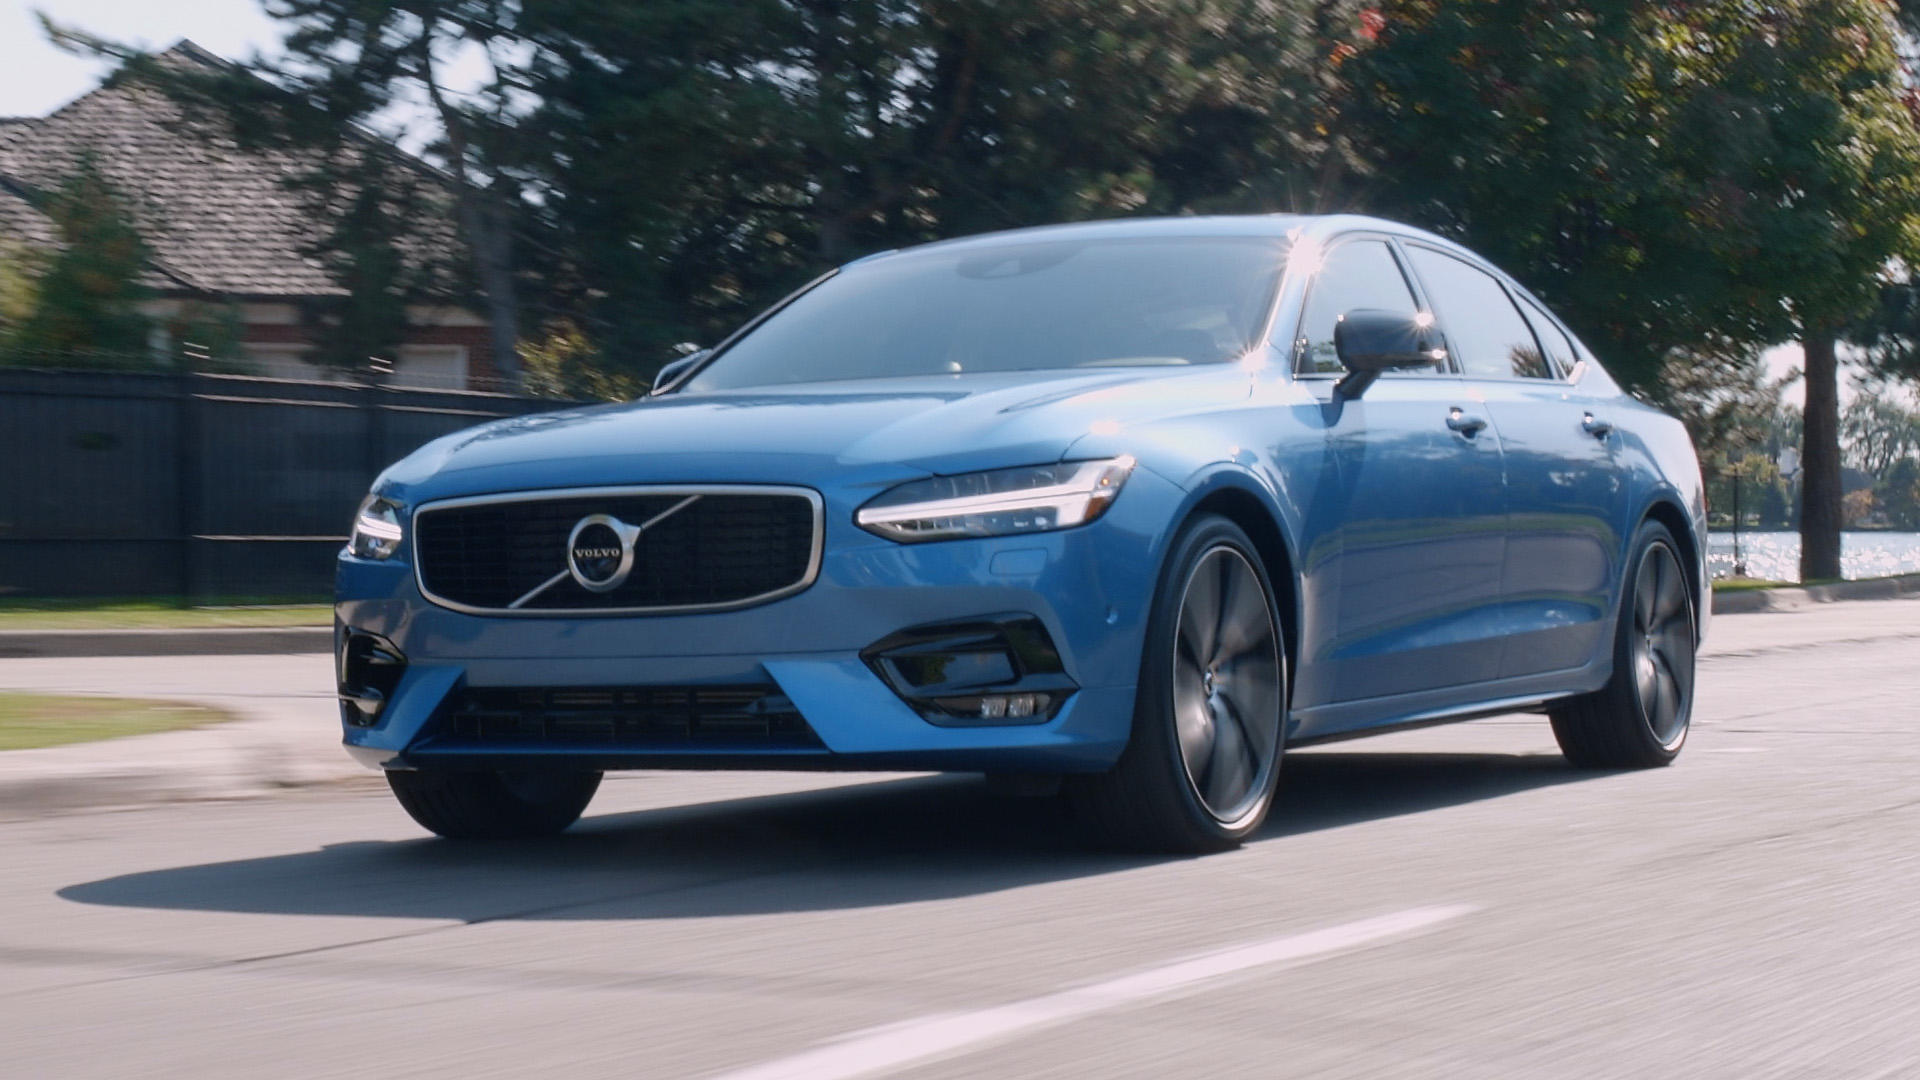 Video: 5 things you need to know about the 2020 Volvo S90 T6 AWD R-Design